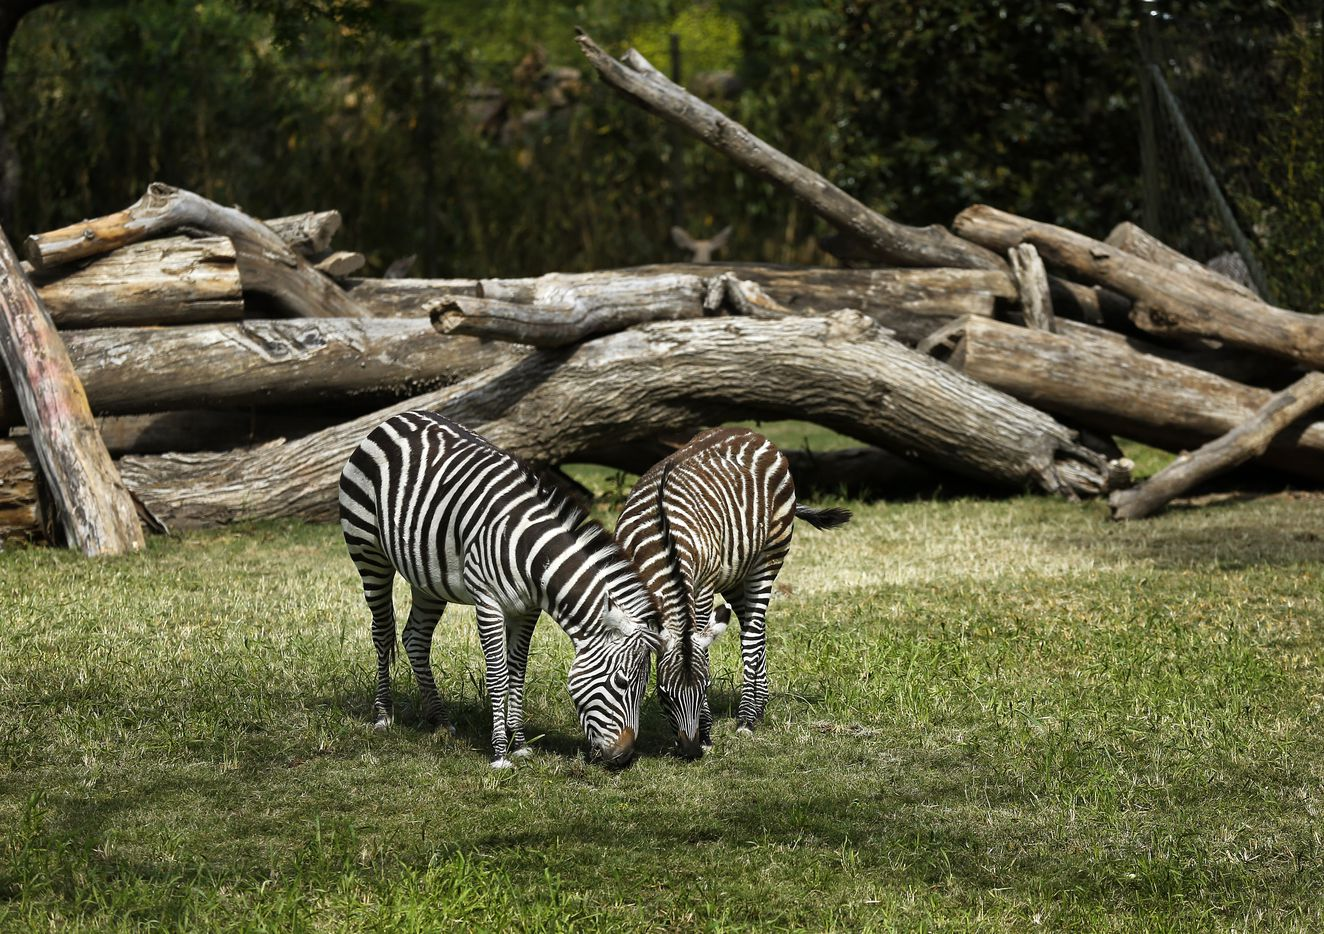 Nine-month old Grant's zebra colt Jack (right) and his mother Roxie graze in the new 10-acre African Savanna exhibit at the Fort Worth Zoo.